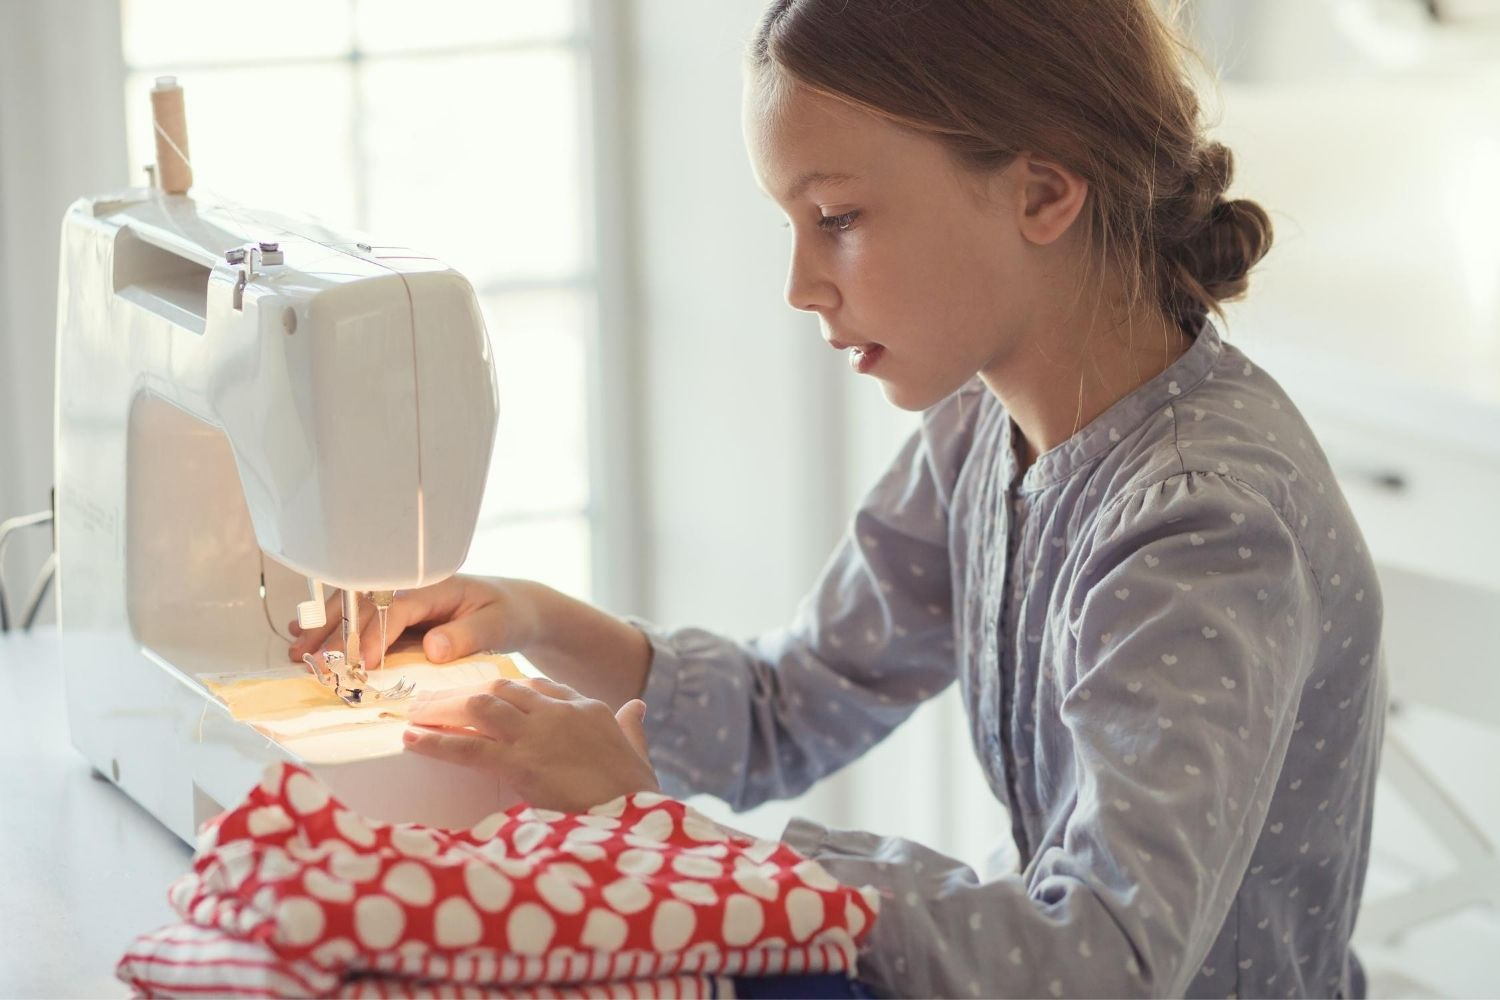 Sewing 101: For Kids